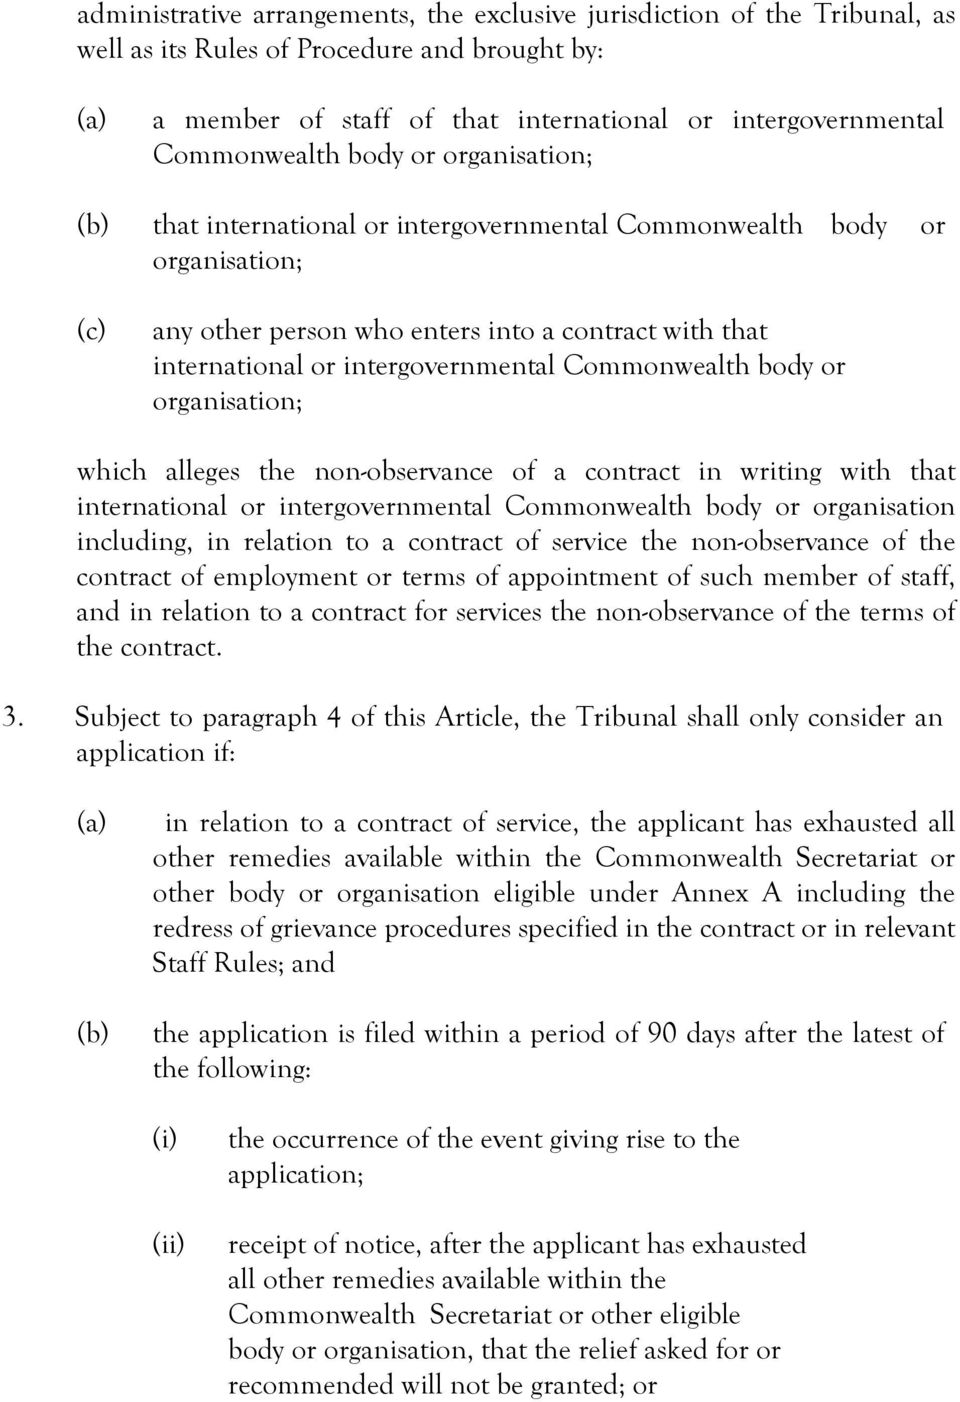 intergovernmental Commonwealth body or organisation; which alleges the non-observance of a contract in writing with that international or intergovernmental Commonwealth body or organisation